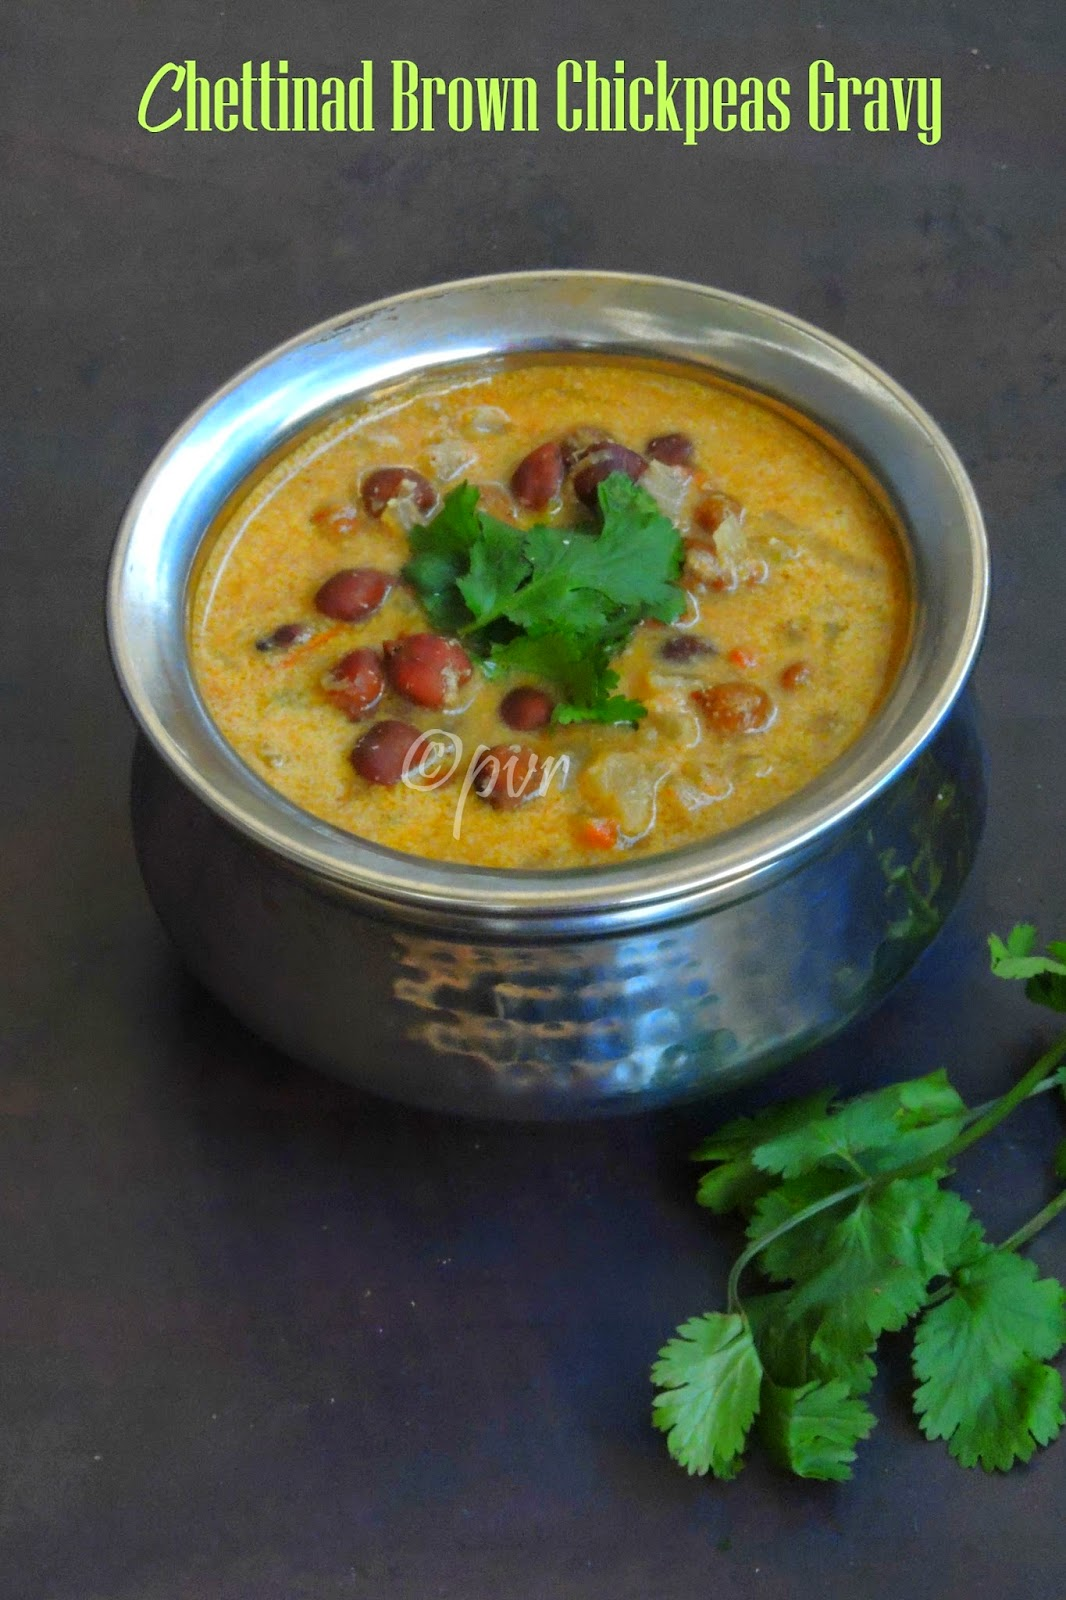 Chettinad chickpeas gravy, brown chickpeas kuzhambu